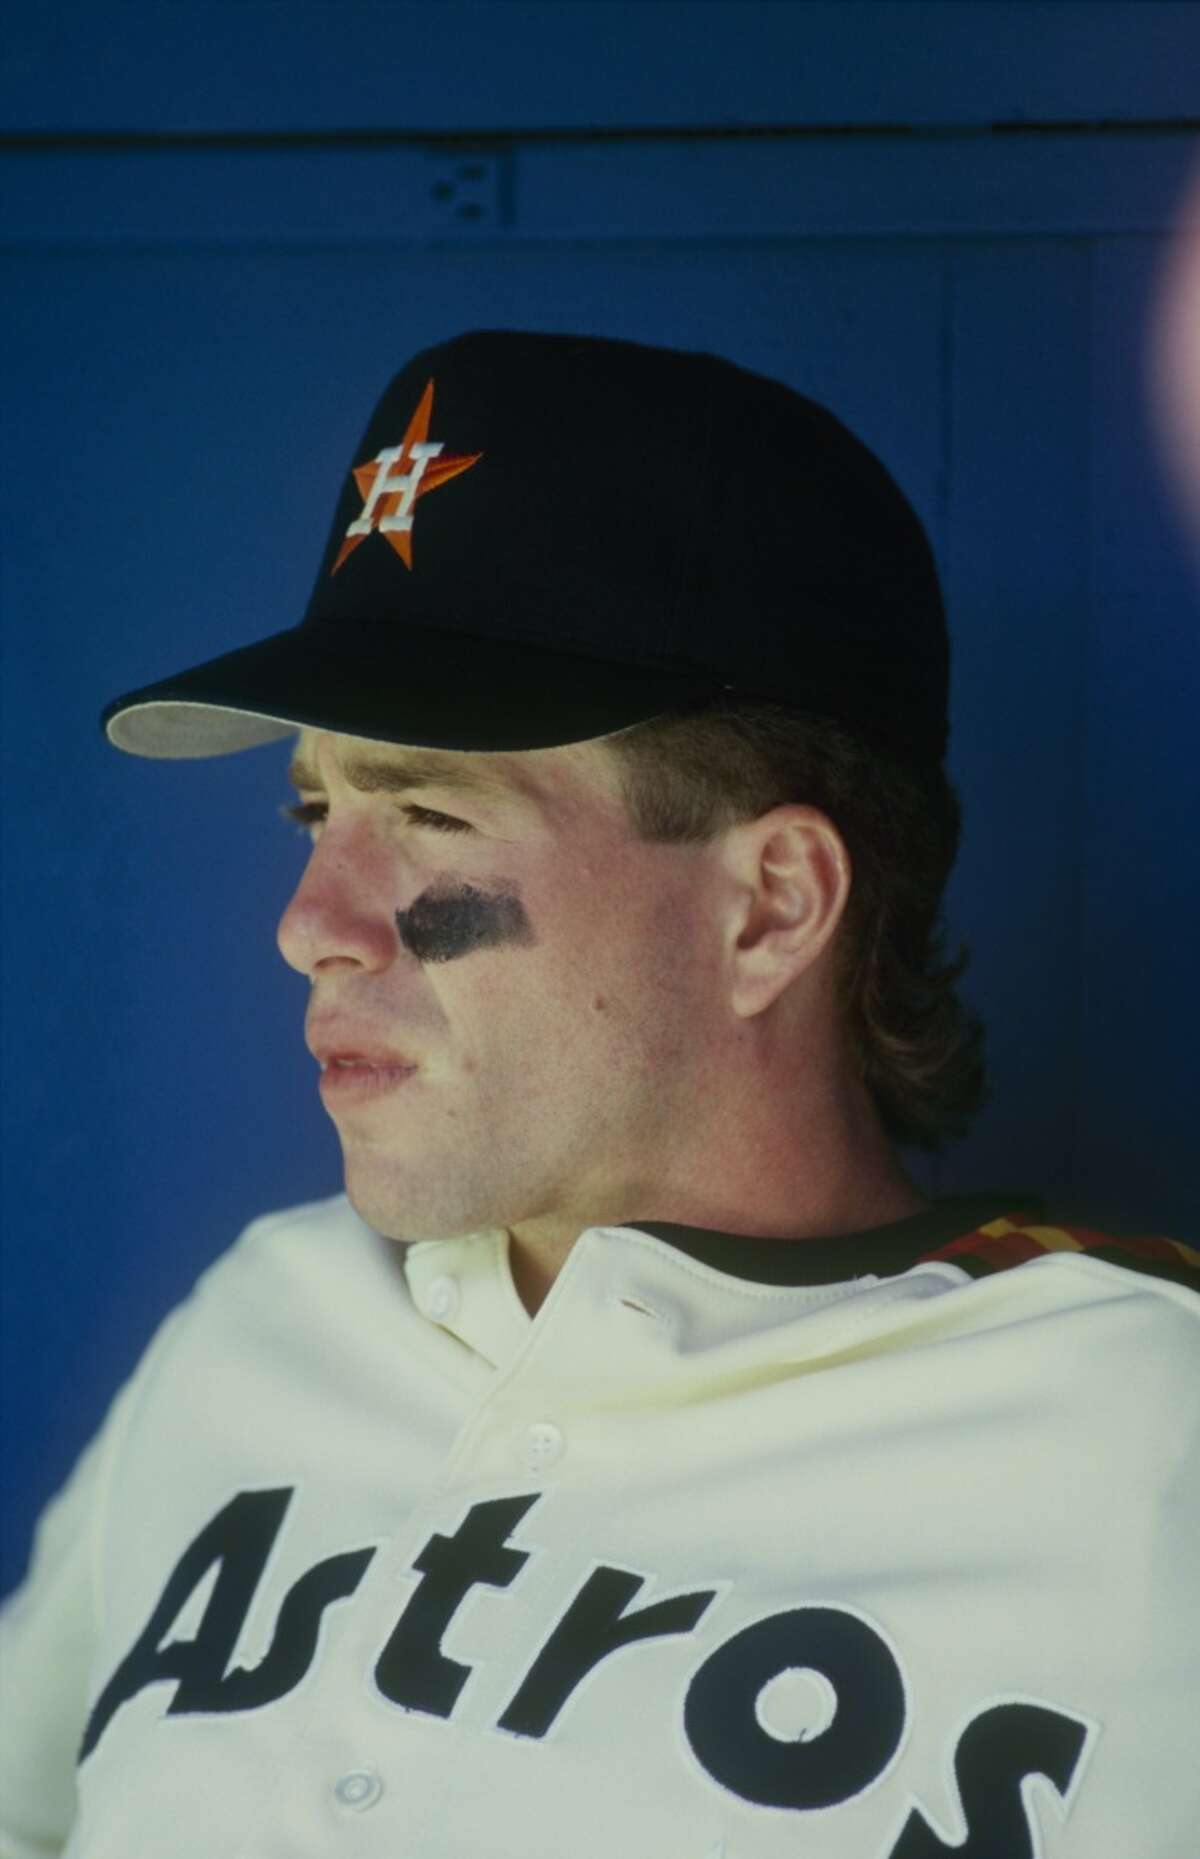 Jeff Bagwell is a native of Killingworth, and played baseball for the University of Hartford. He was a first baseman for the Houston Astros for 15 years, and a four-time All Star player.